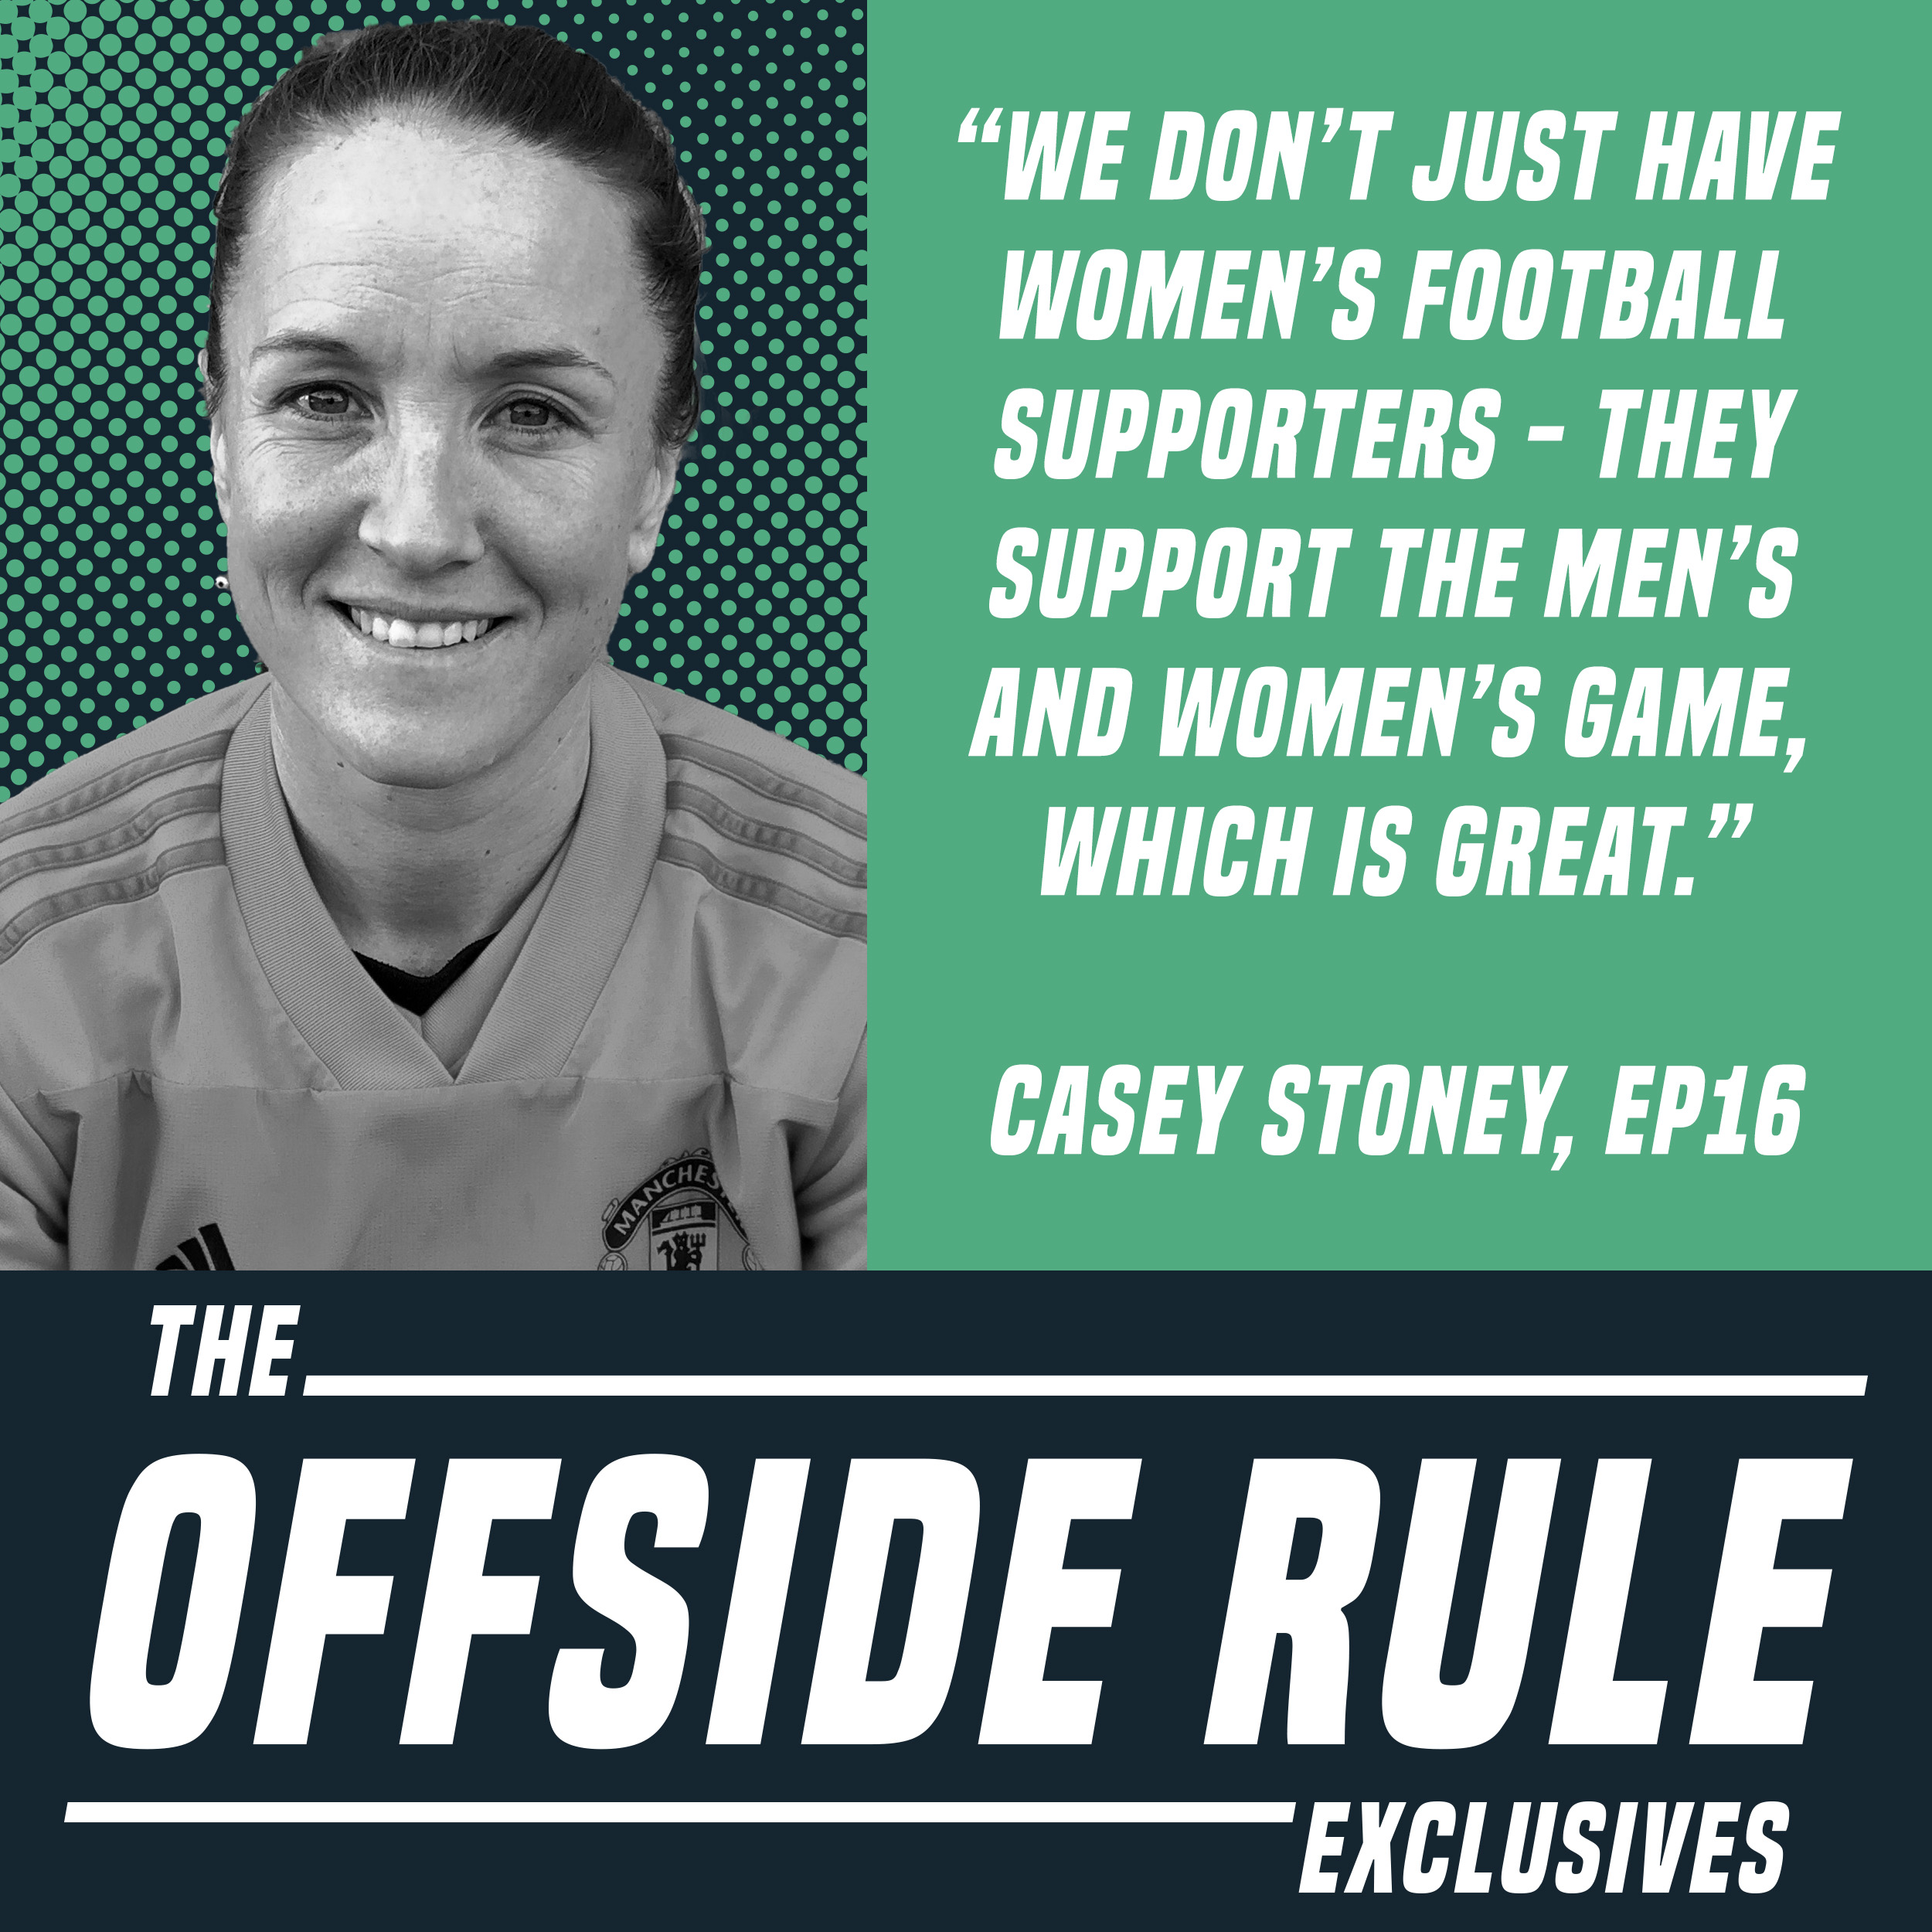 """""""We don't just have women's football supporters - they support the men's and women's game, which is great."""" Casey Stoney, EP 16, The Offside Rule Exclusives"""